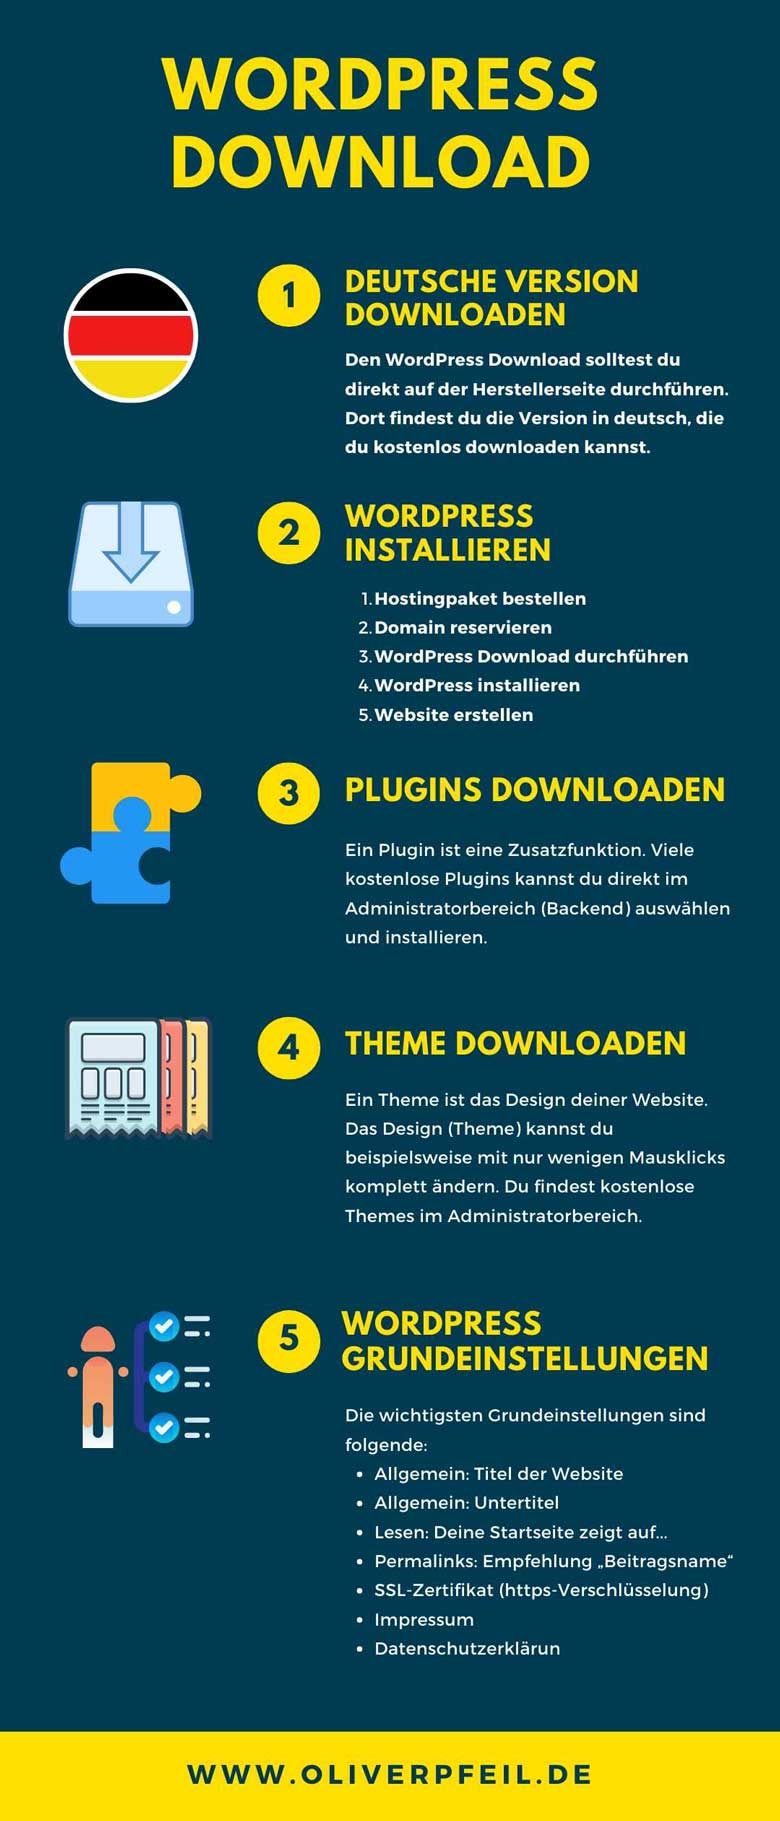 WordPress Download auf Deutsch